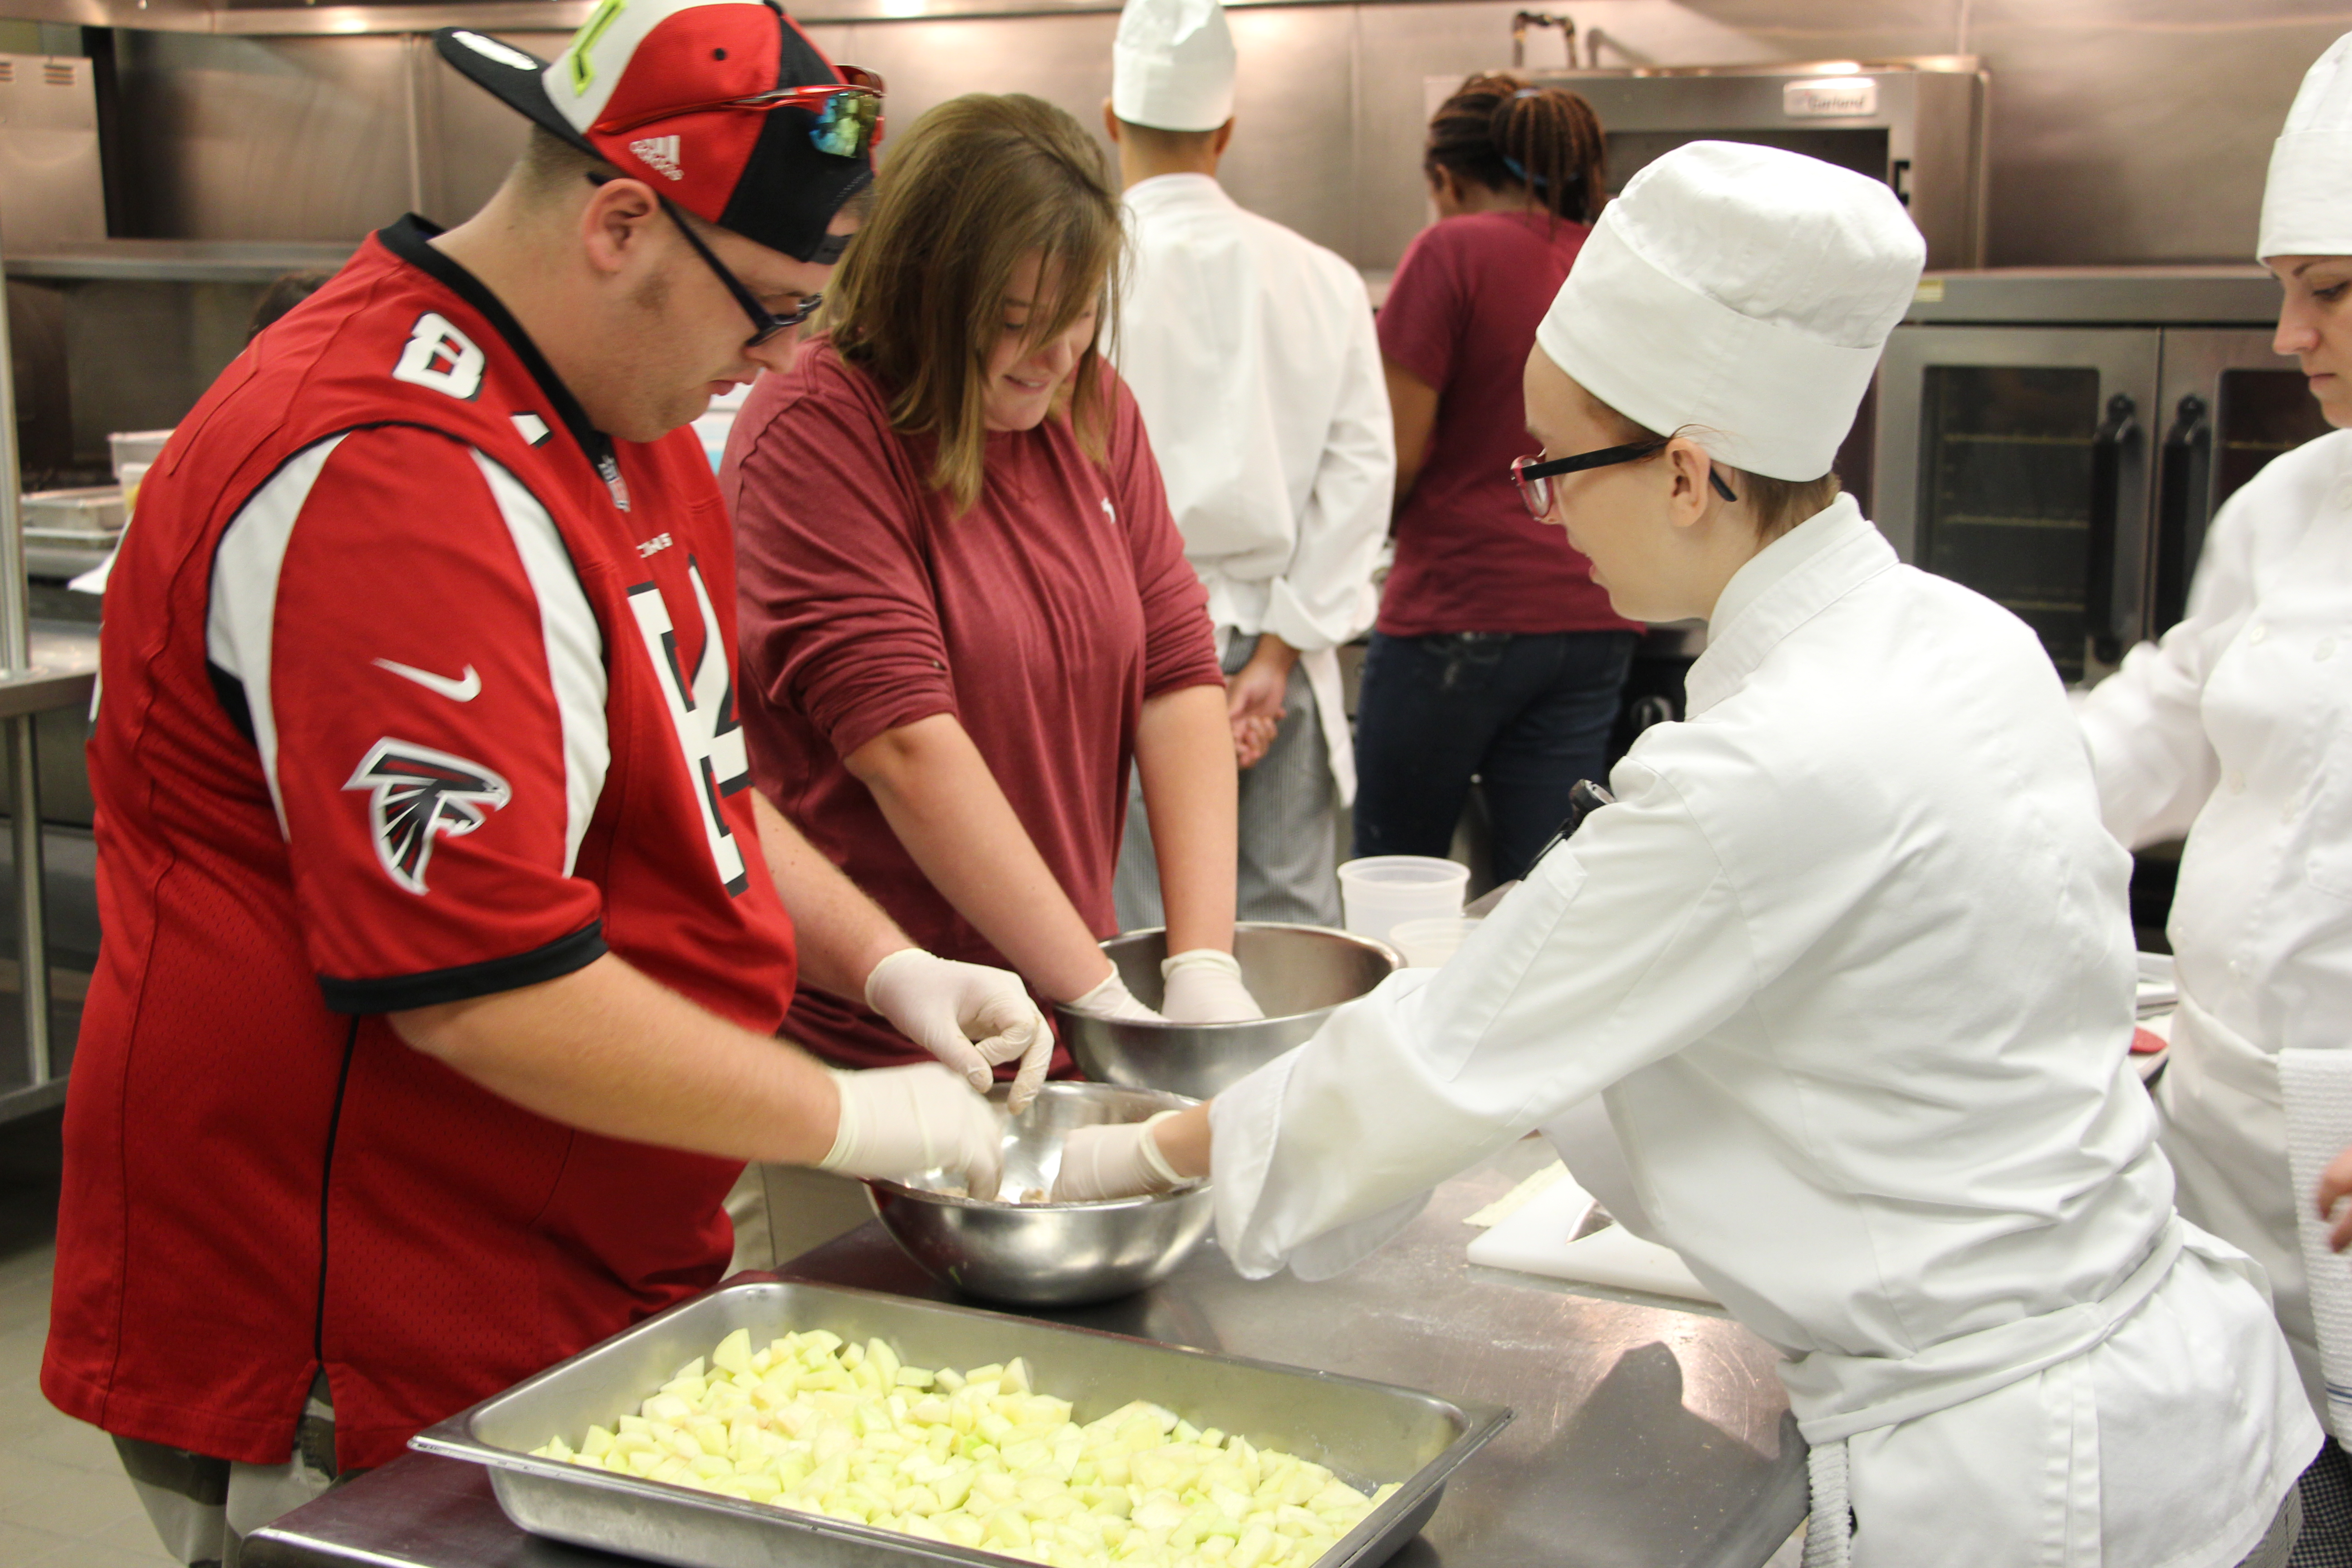 Photo of SETS students Carson Boyd and Madison Johnson building an apple crisp with the help of CTC Culinary Arts student Sara Sheets.